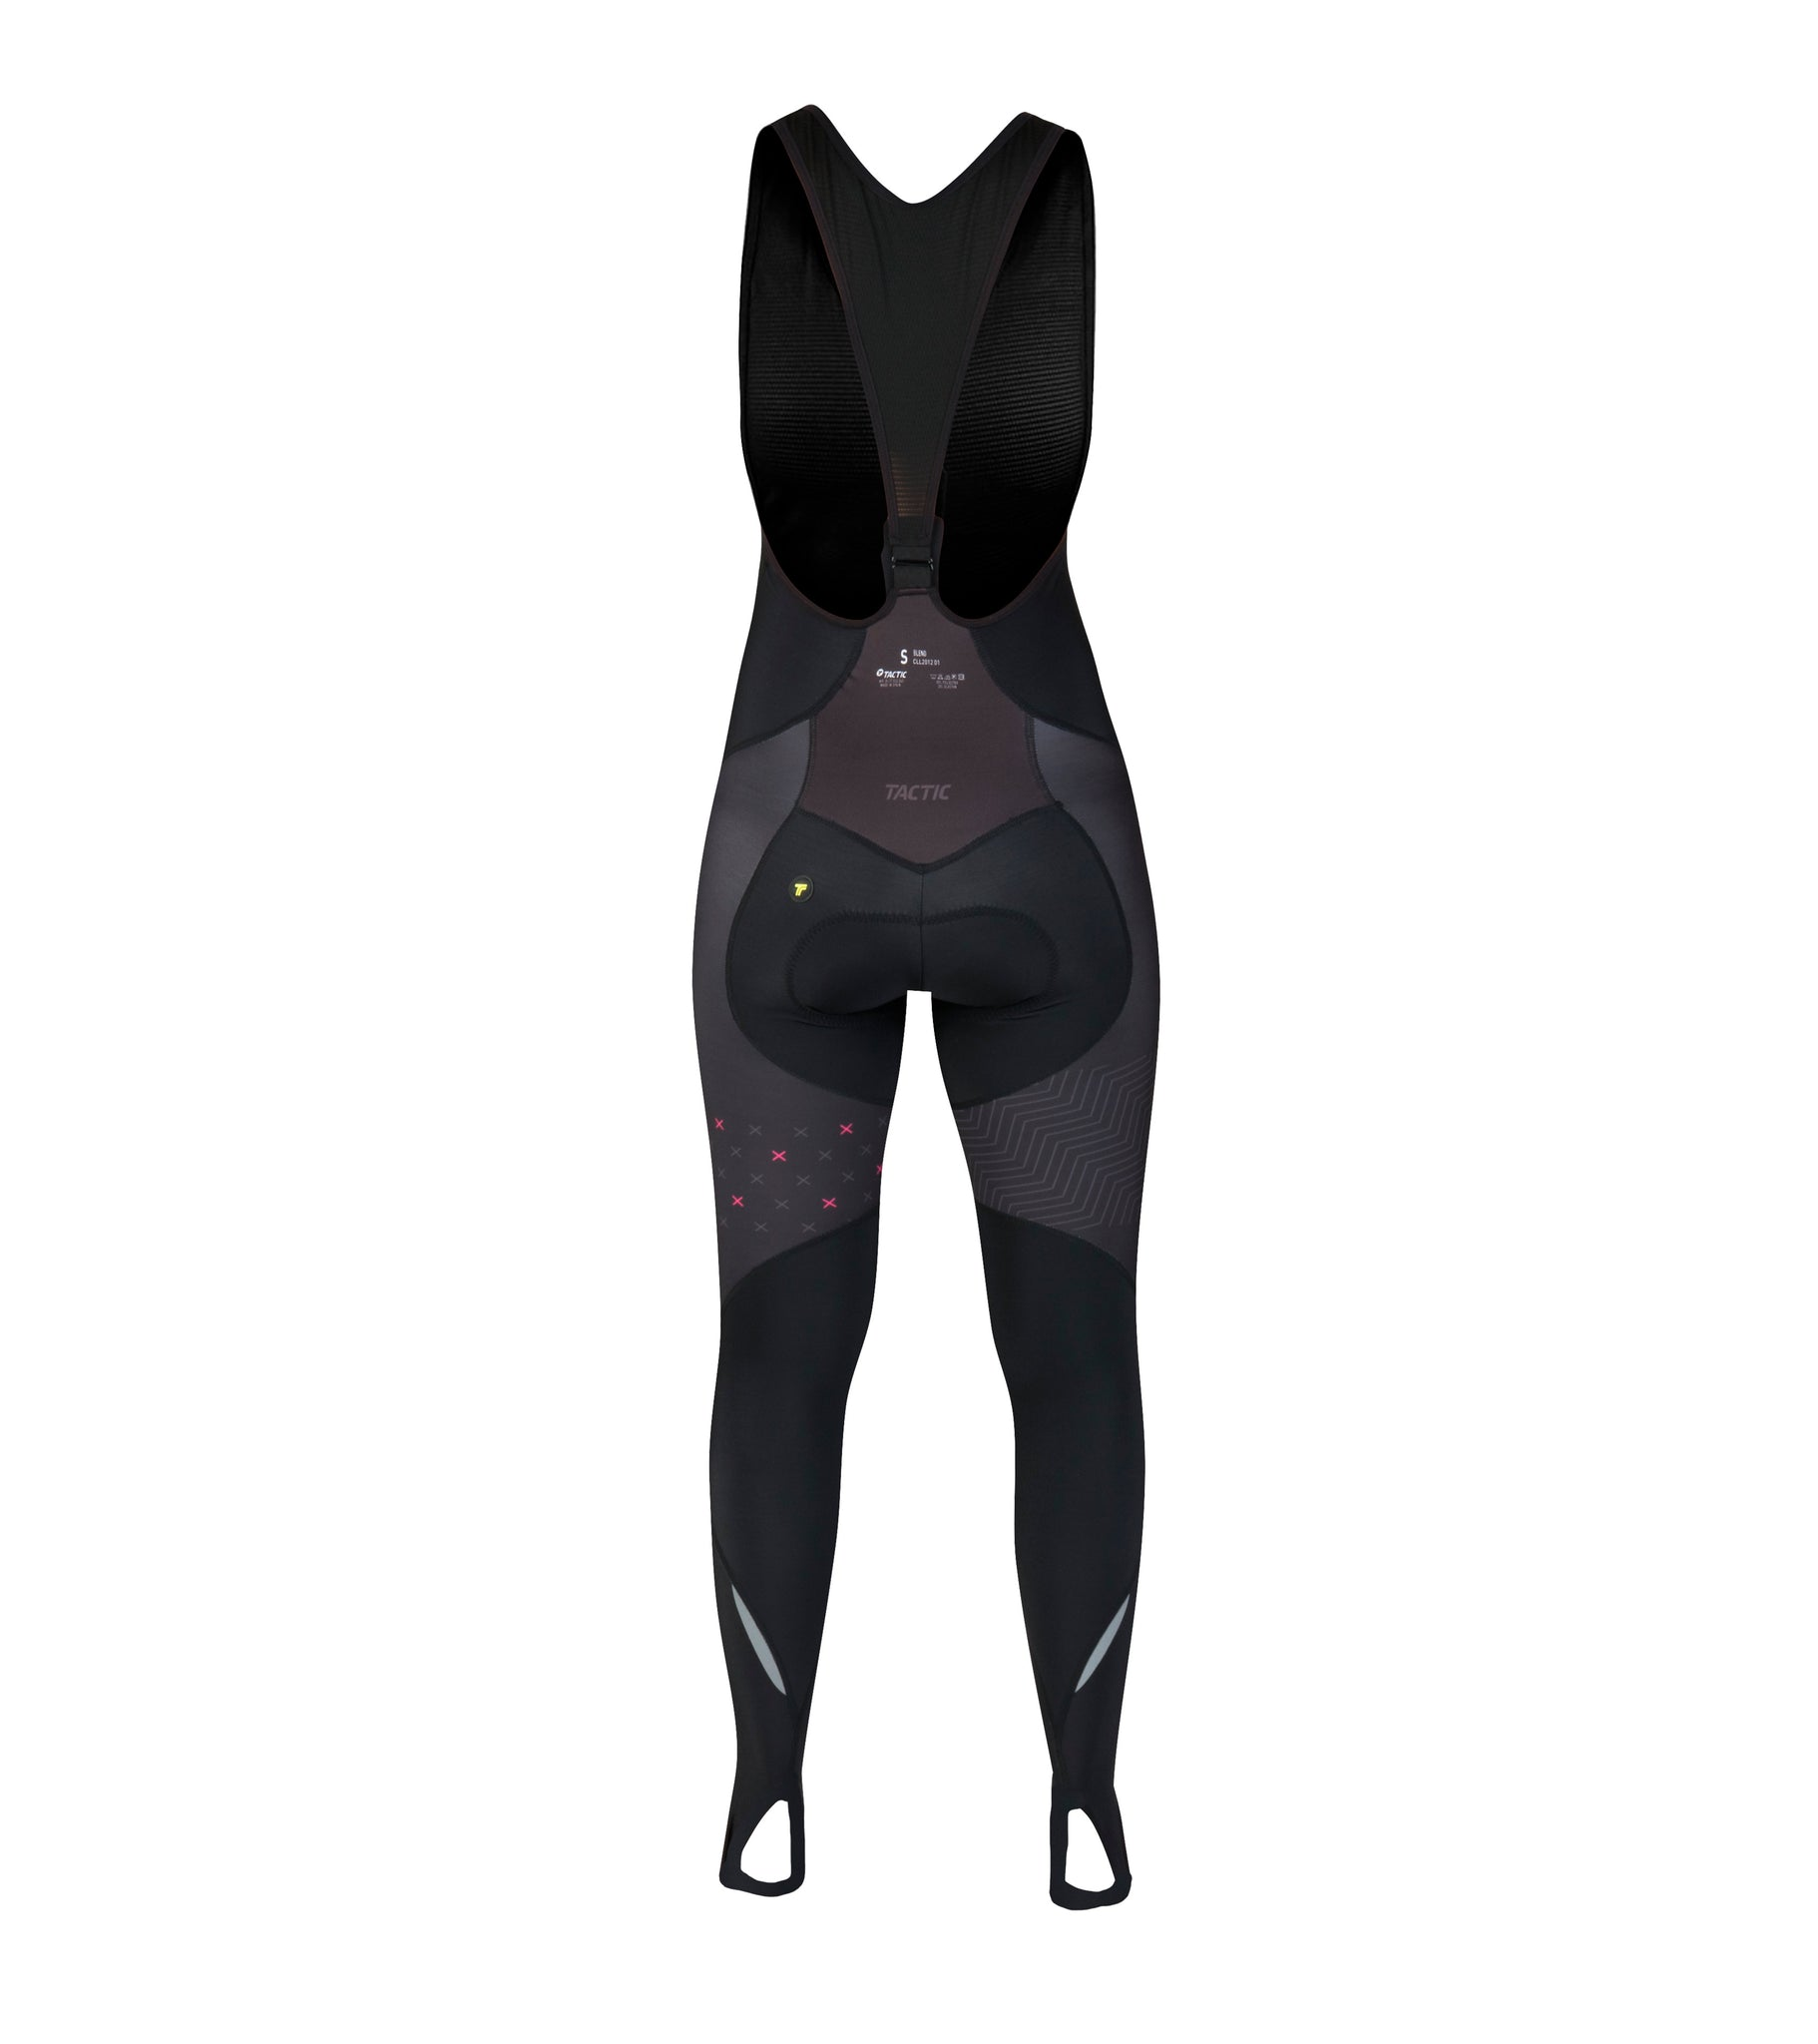 PERFORMANCE ELITE WOMAN BIB TIGHTS / 15548